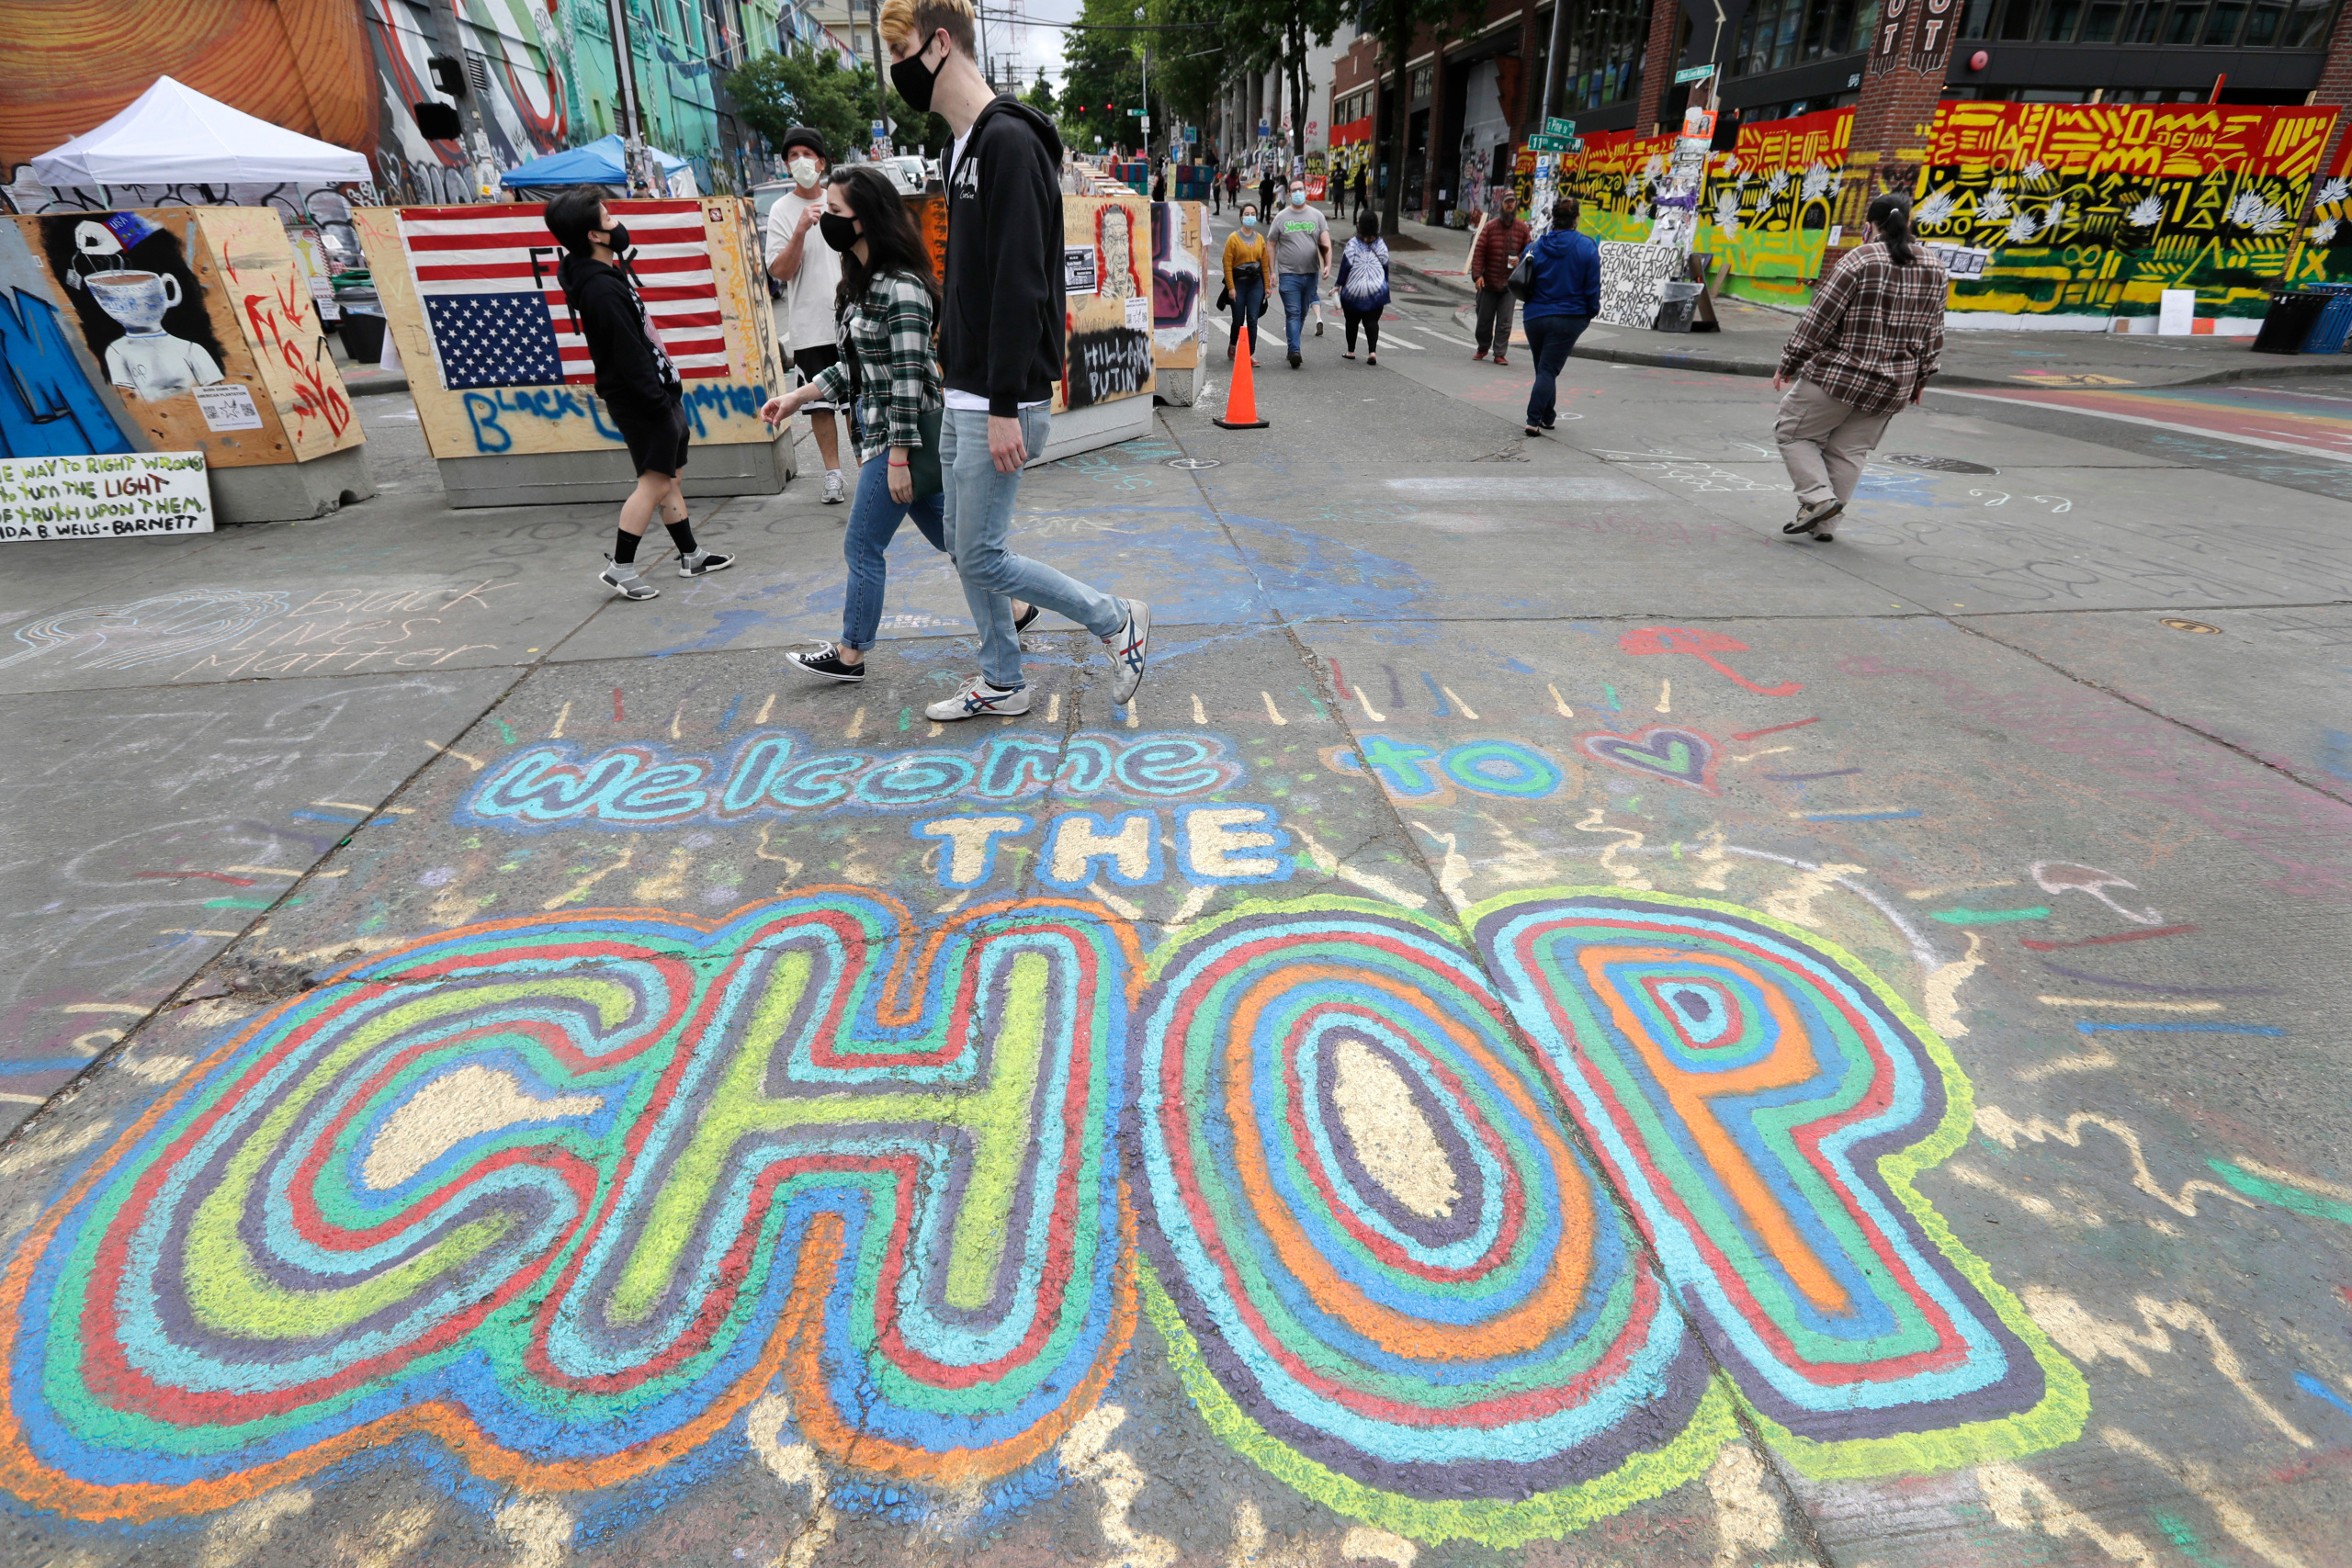 Seattle will move to dismantle protest zone, mayor says | KOIN.com 5